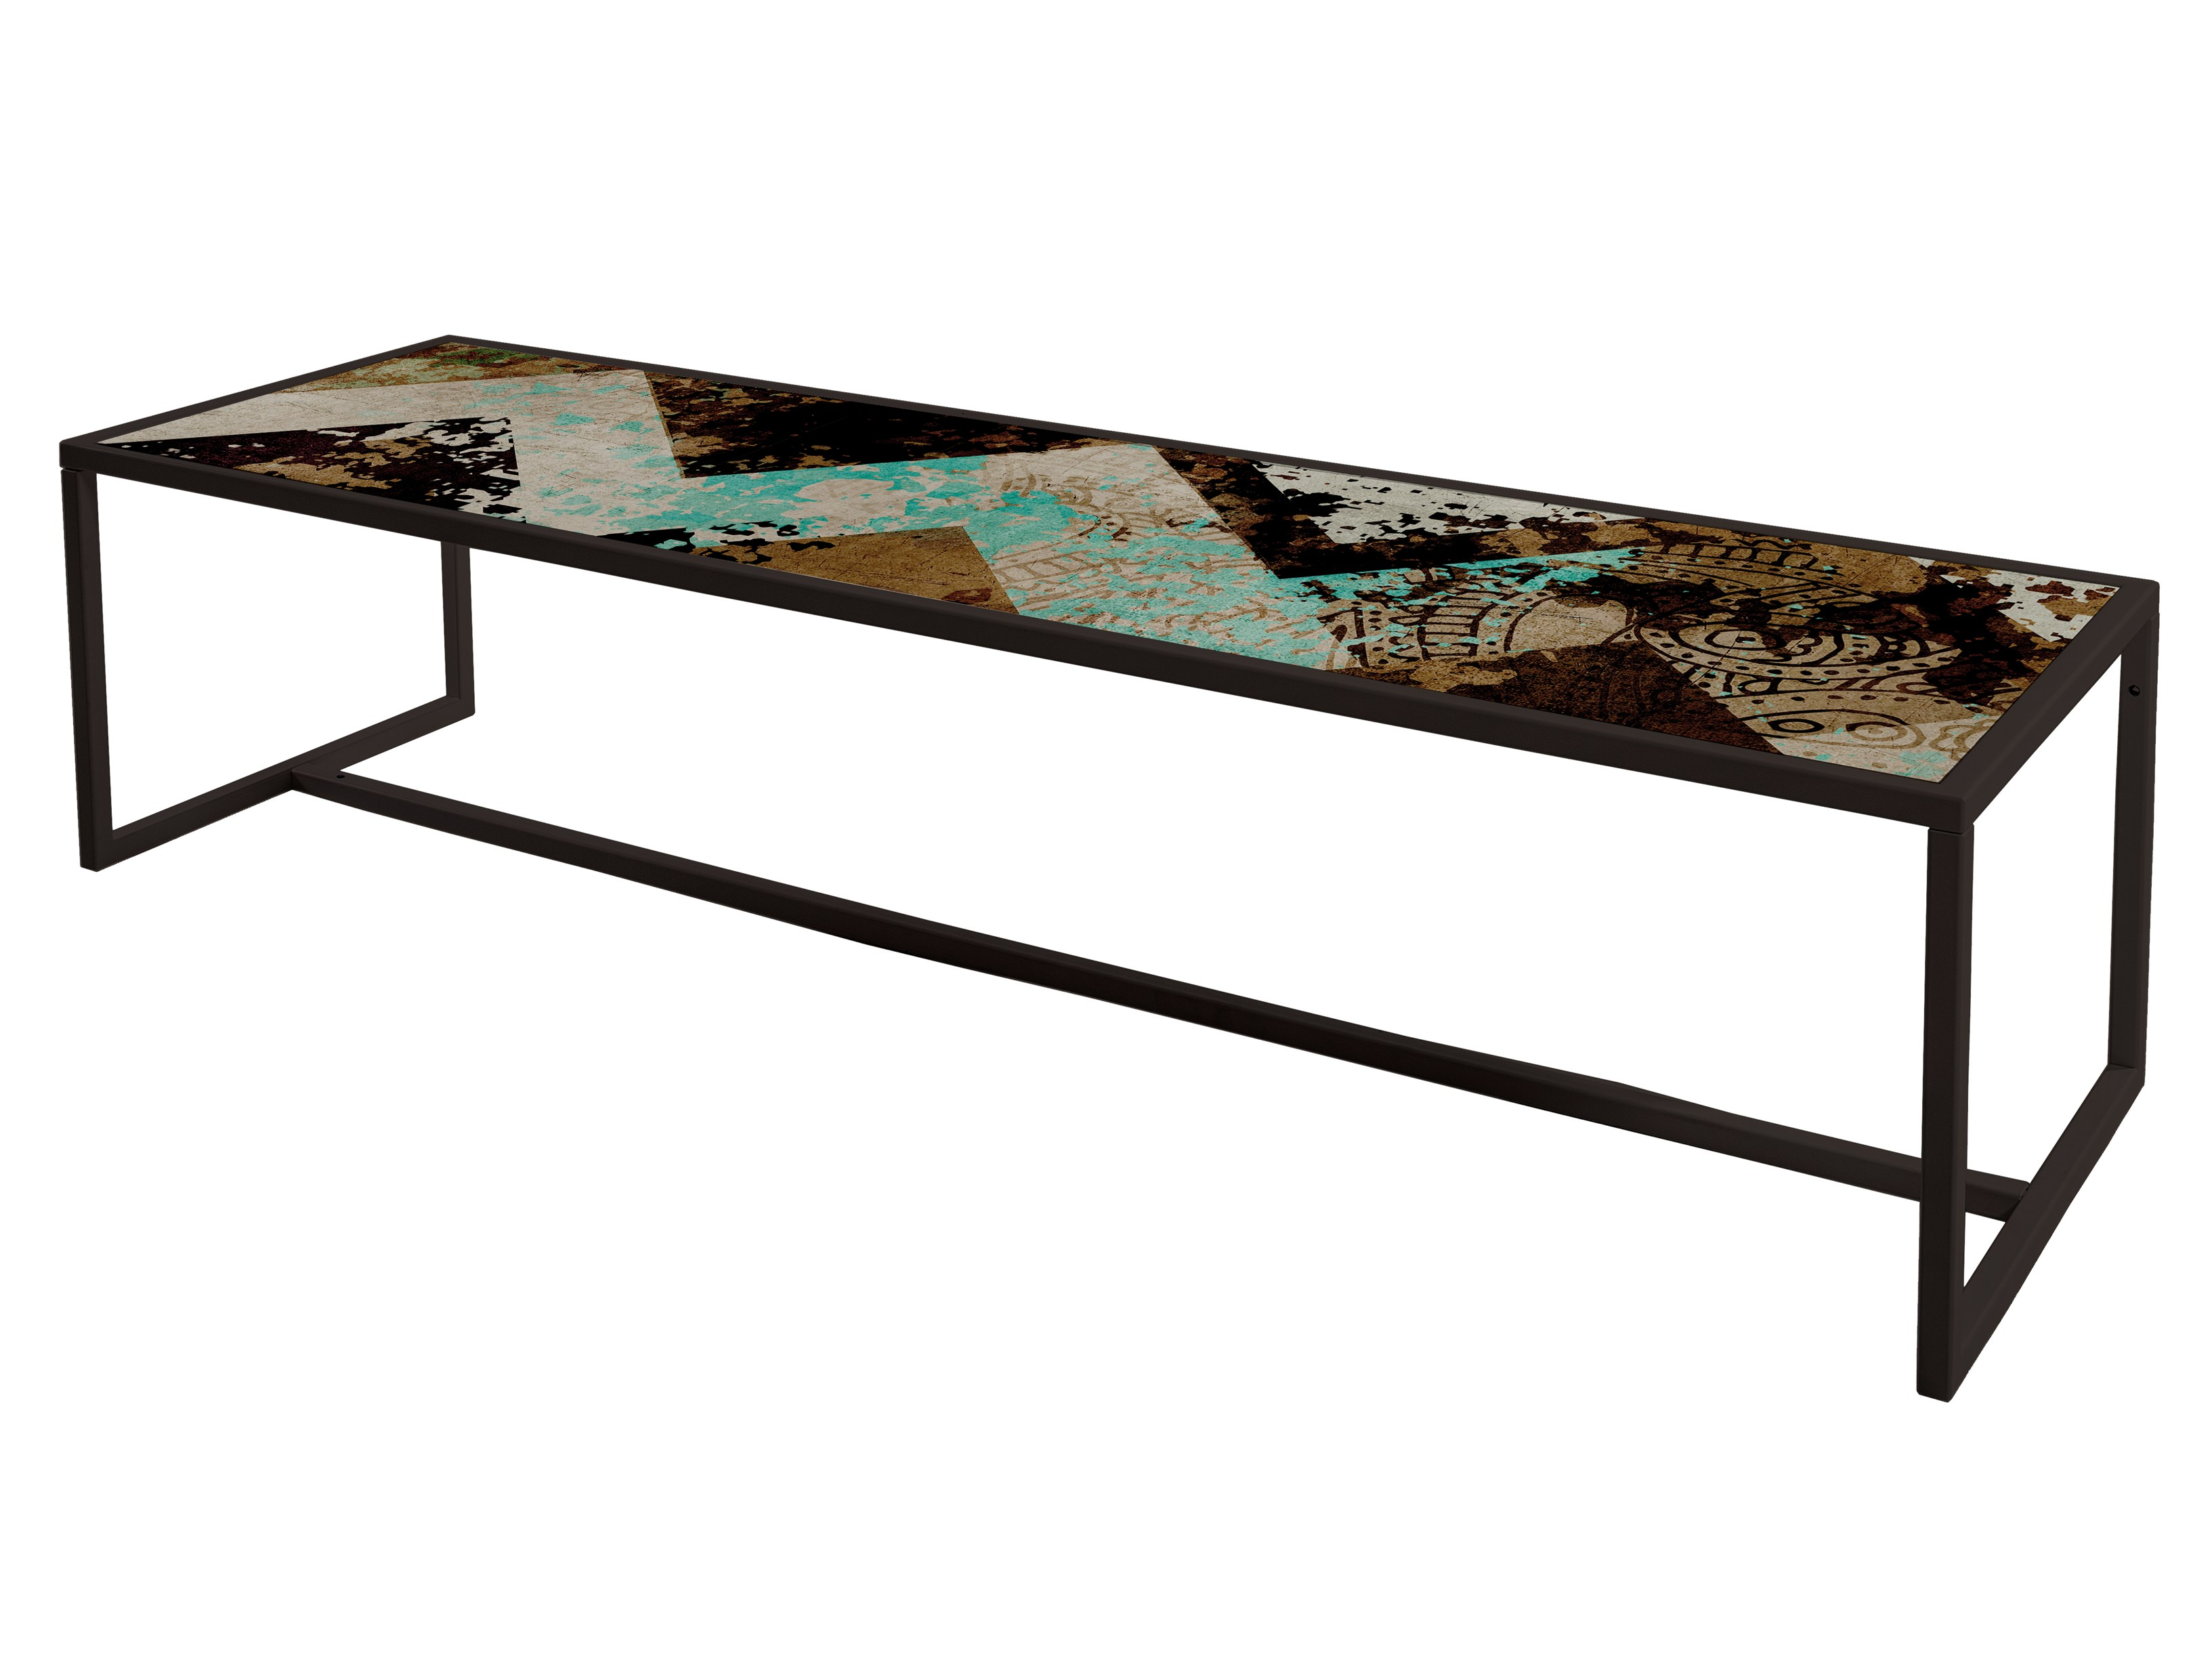 low painted metal coffee table capilano capilano collection by